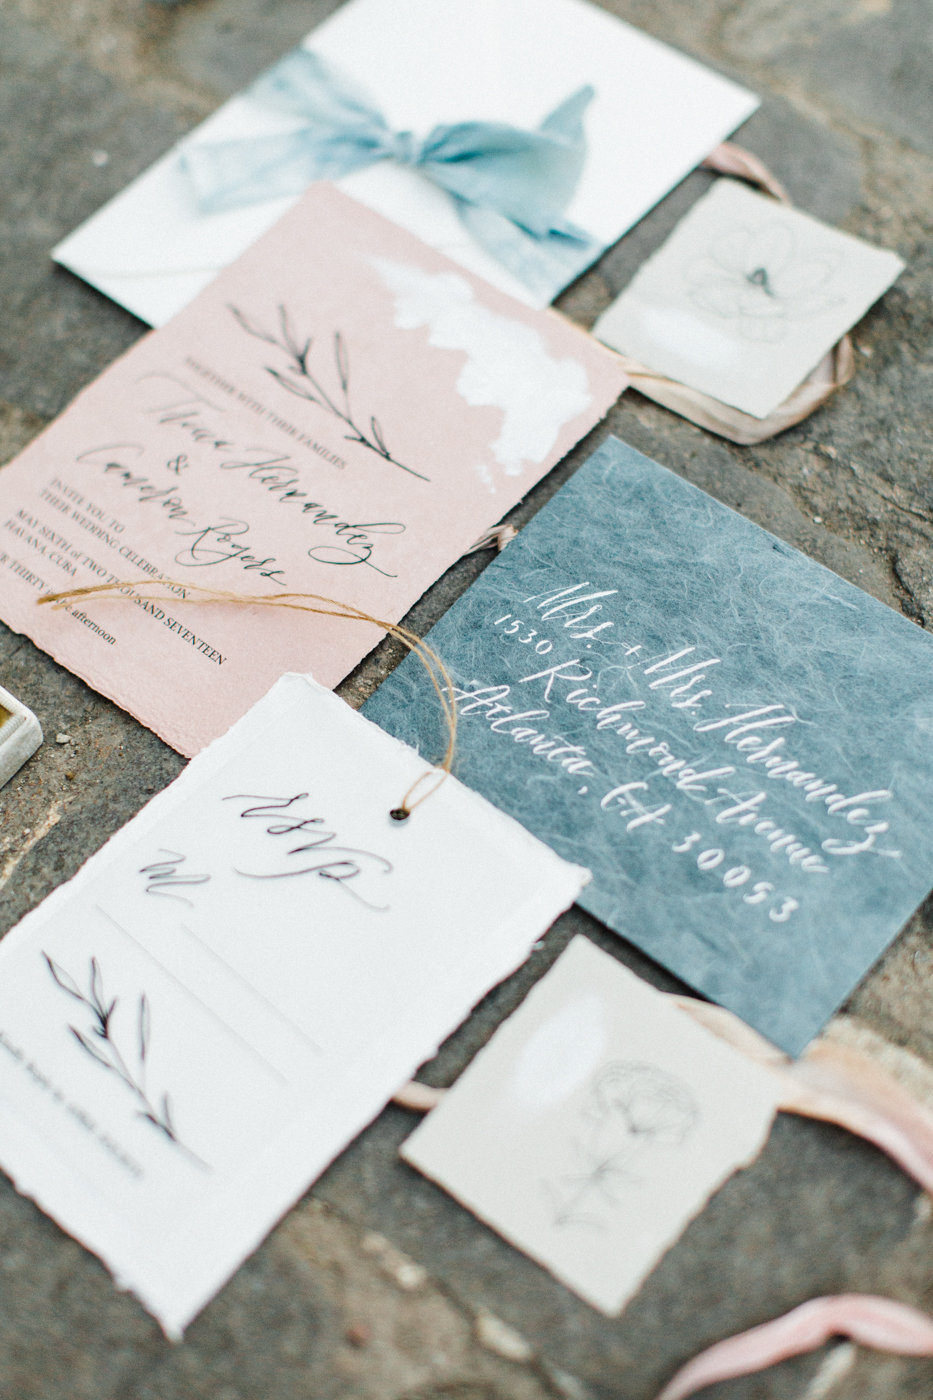 This minimalist wedding invitation suite features simplistic design elements and whimsical calligraphy. If you desire, we have the ability to print on handmade paper for your invitation suite! The suite itself will be more expensive if this technique is used, but it is a beautiful way to showcase your wedding invitations. Photo by Natalie Jackson.